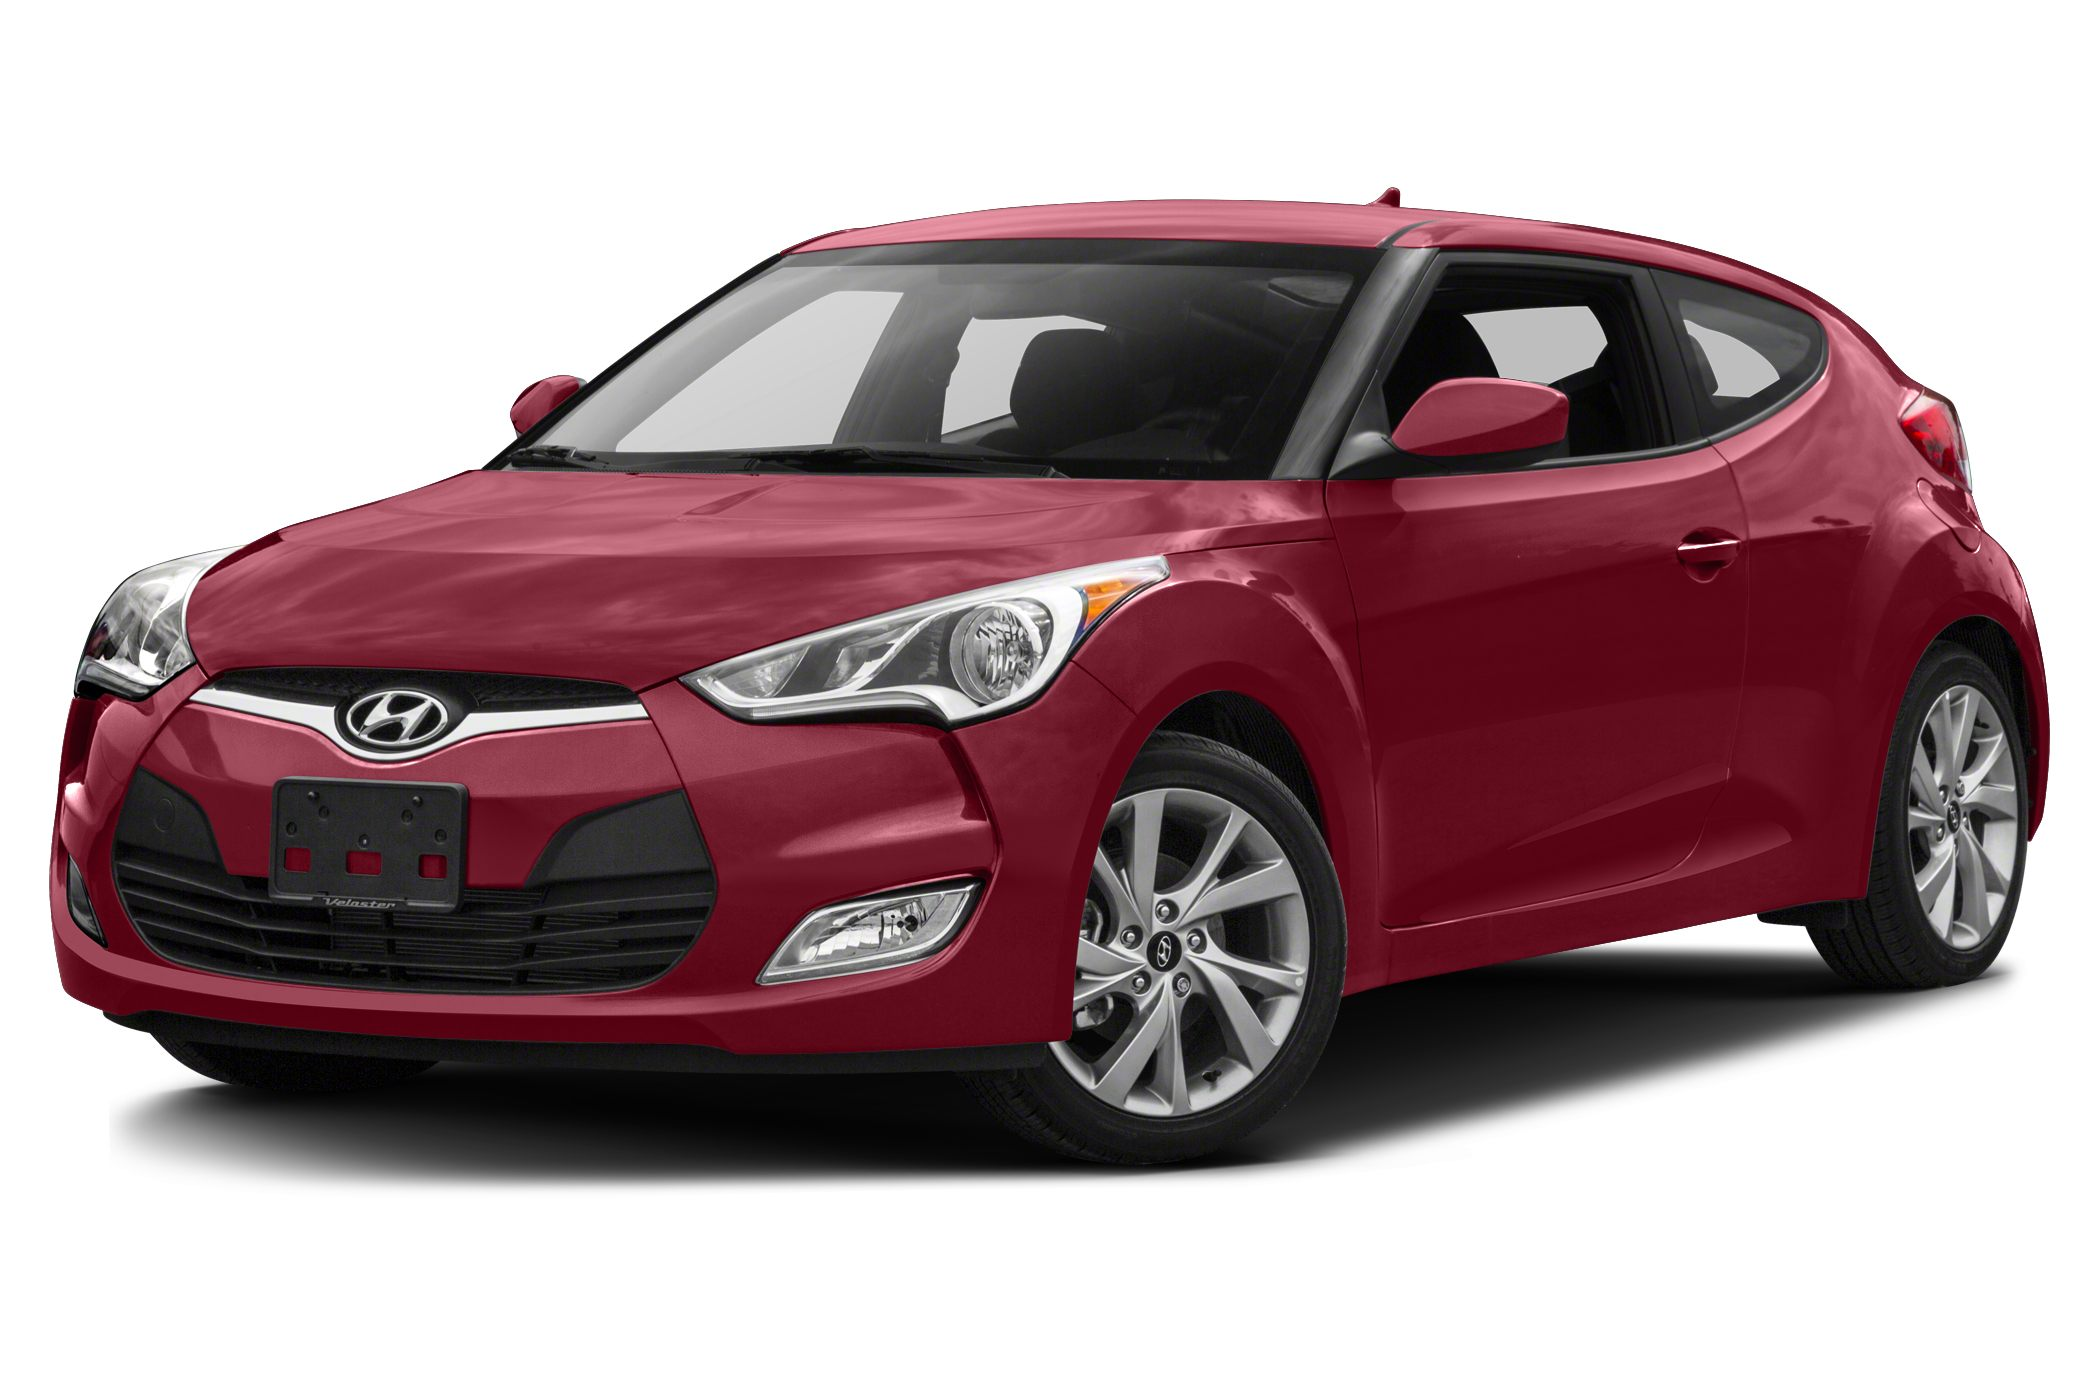 Hyundai Canada Incentives for the new 2021 Hyundai Veloster Coupe and Veloster Turbo in Milton, Toronto, and the GTA